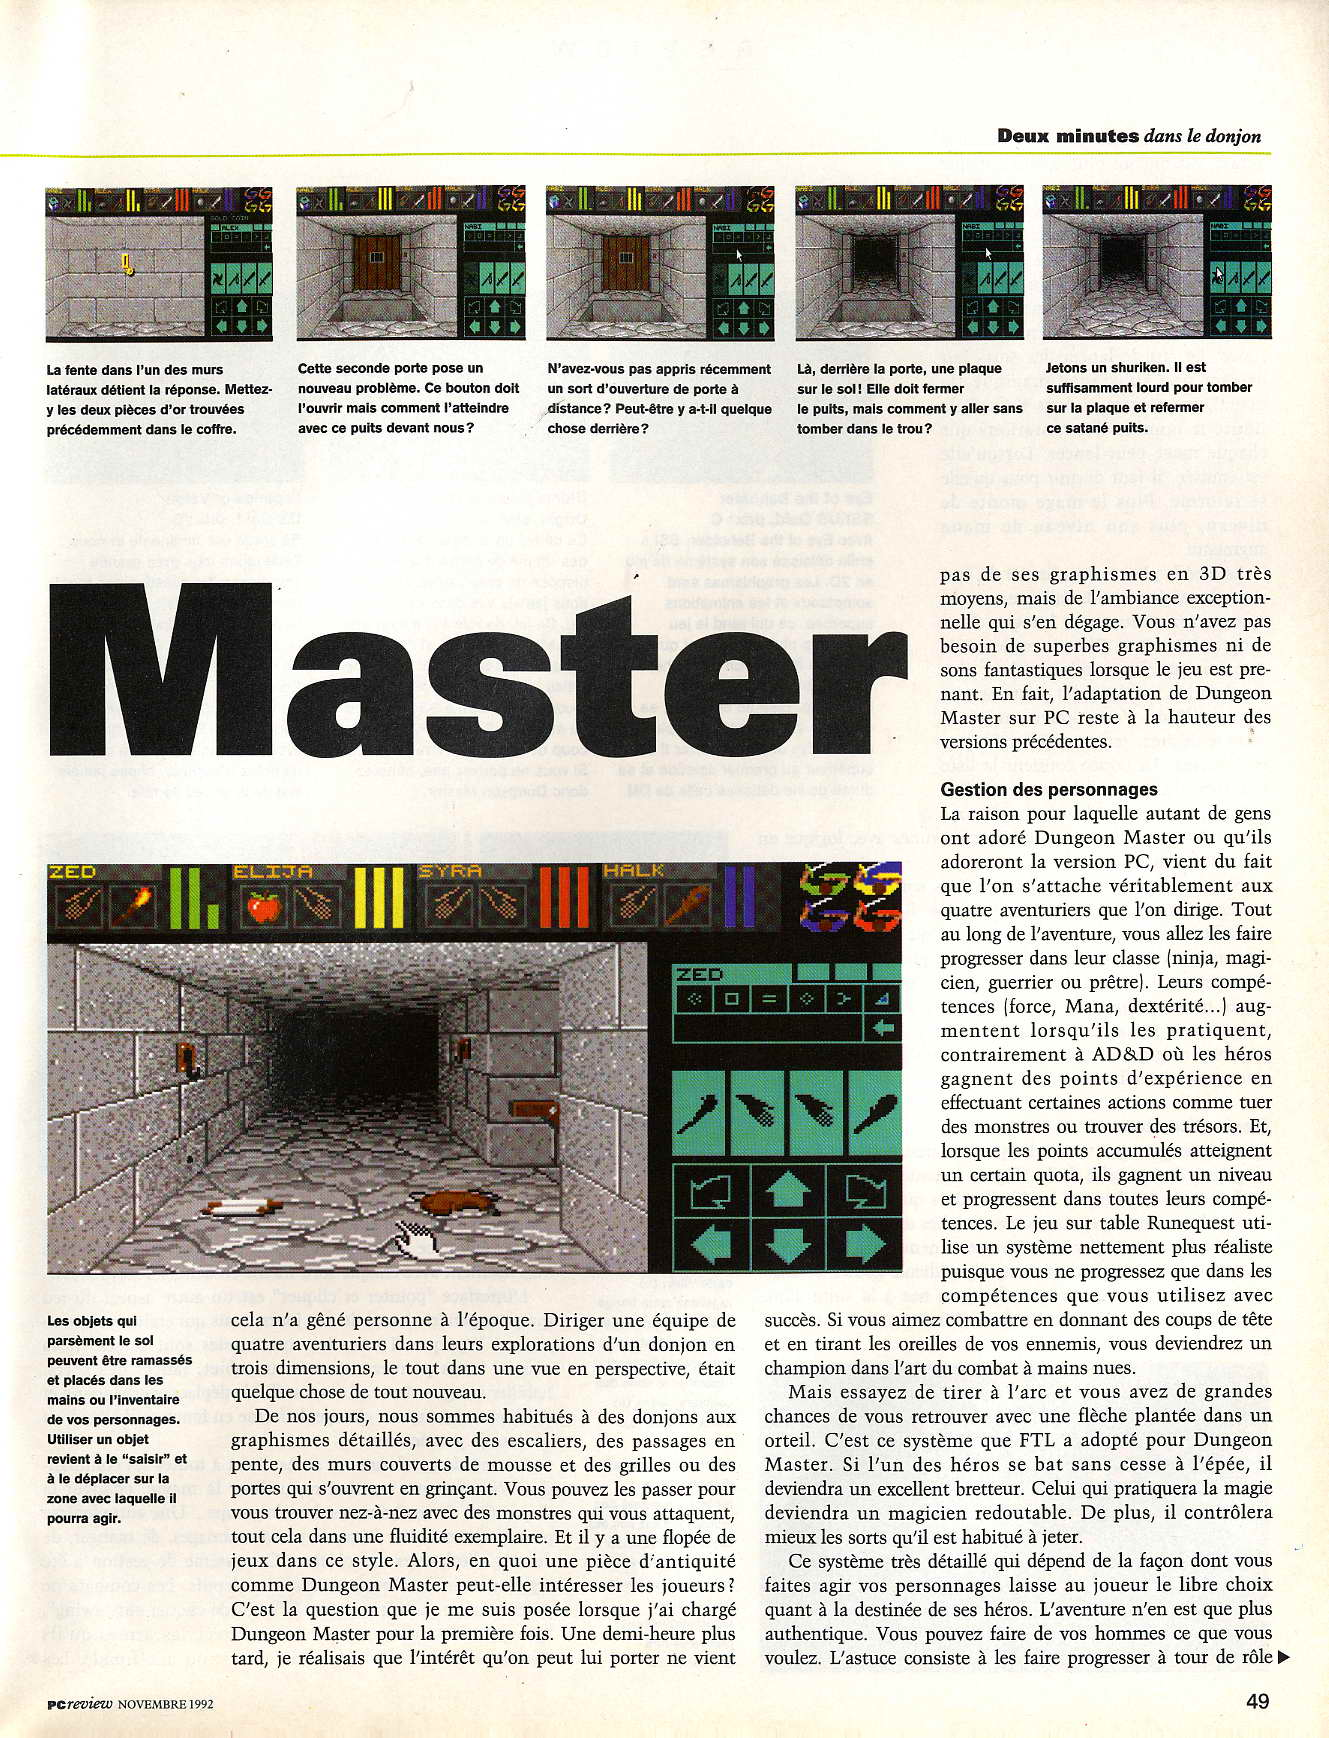 Dungeon Master for PC Review published in French magazine 'PC Review', Issue #2 November 1992, Page 49